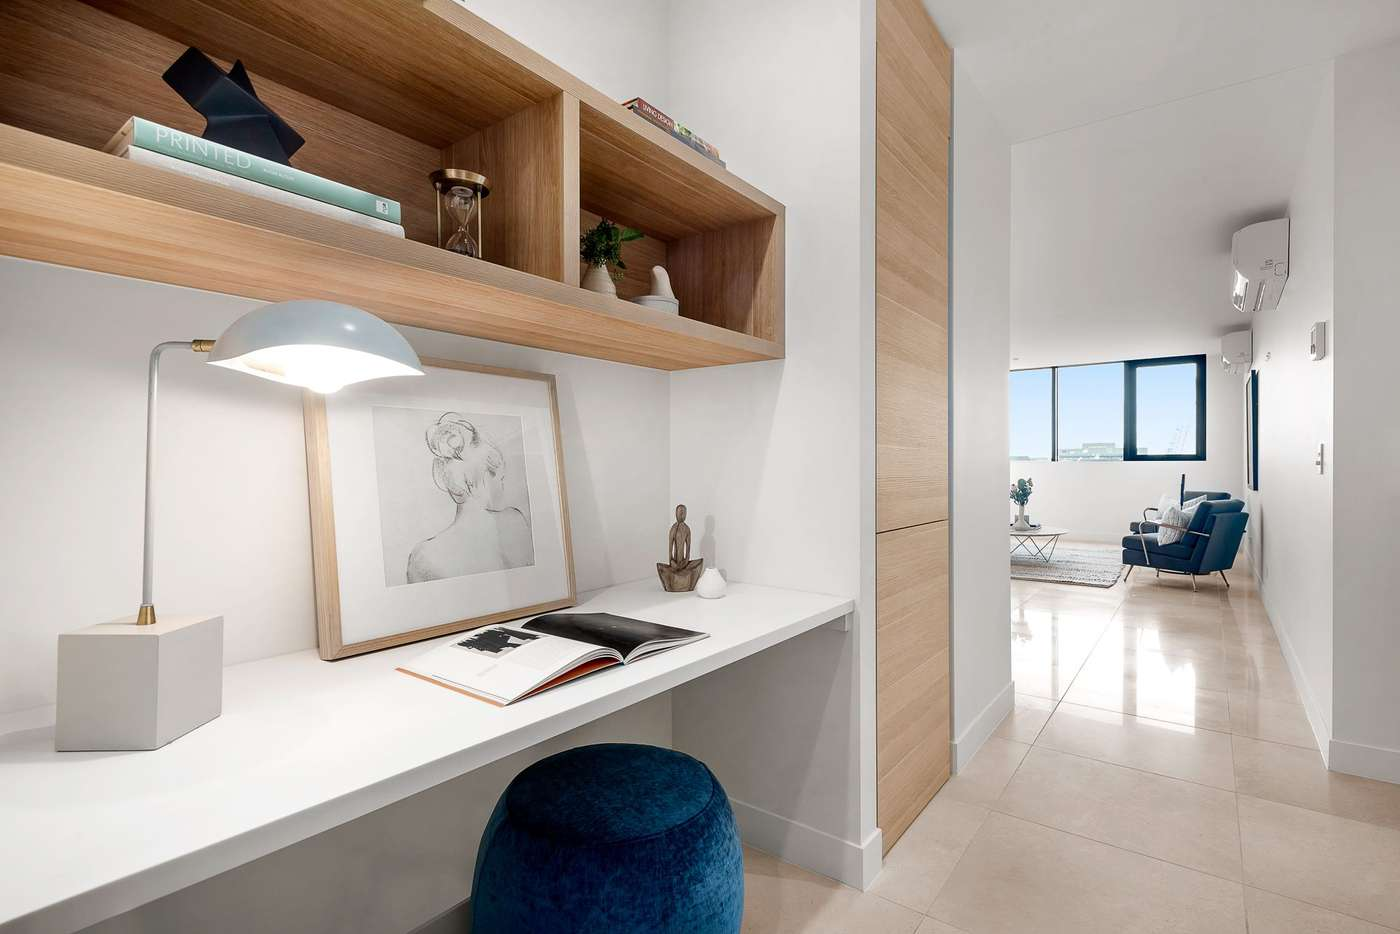 Main view of Homely apartment listing, 1806/12 Queens Road, Melbourne VIC 3004